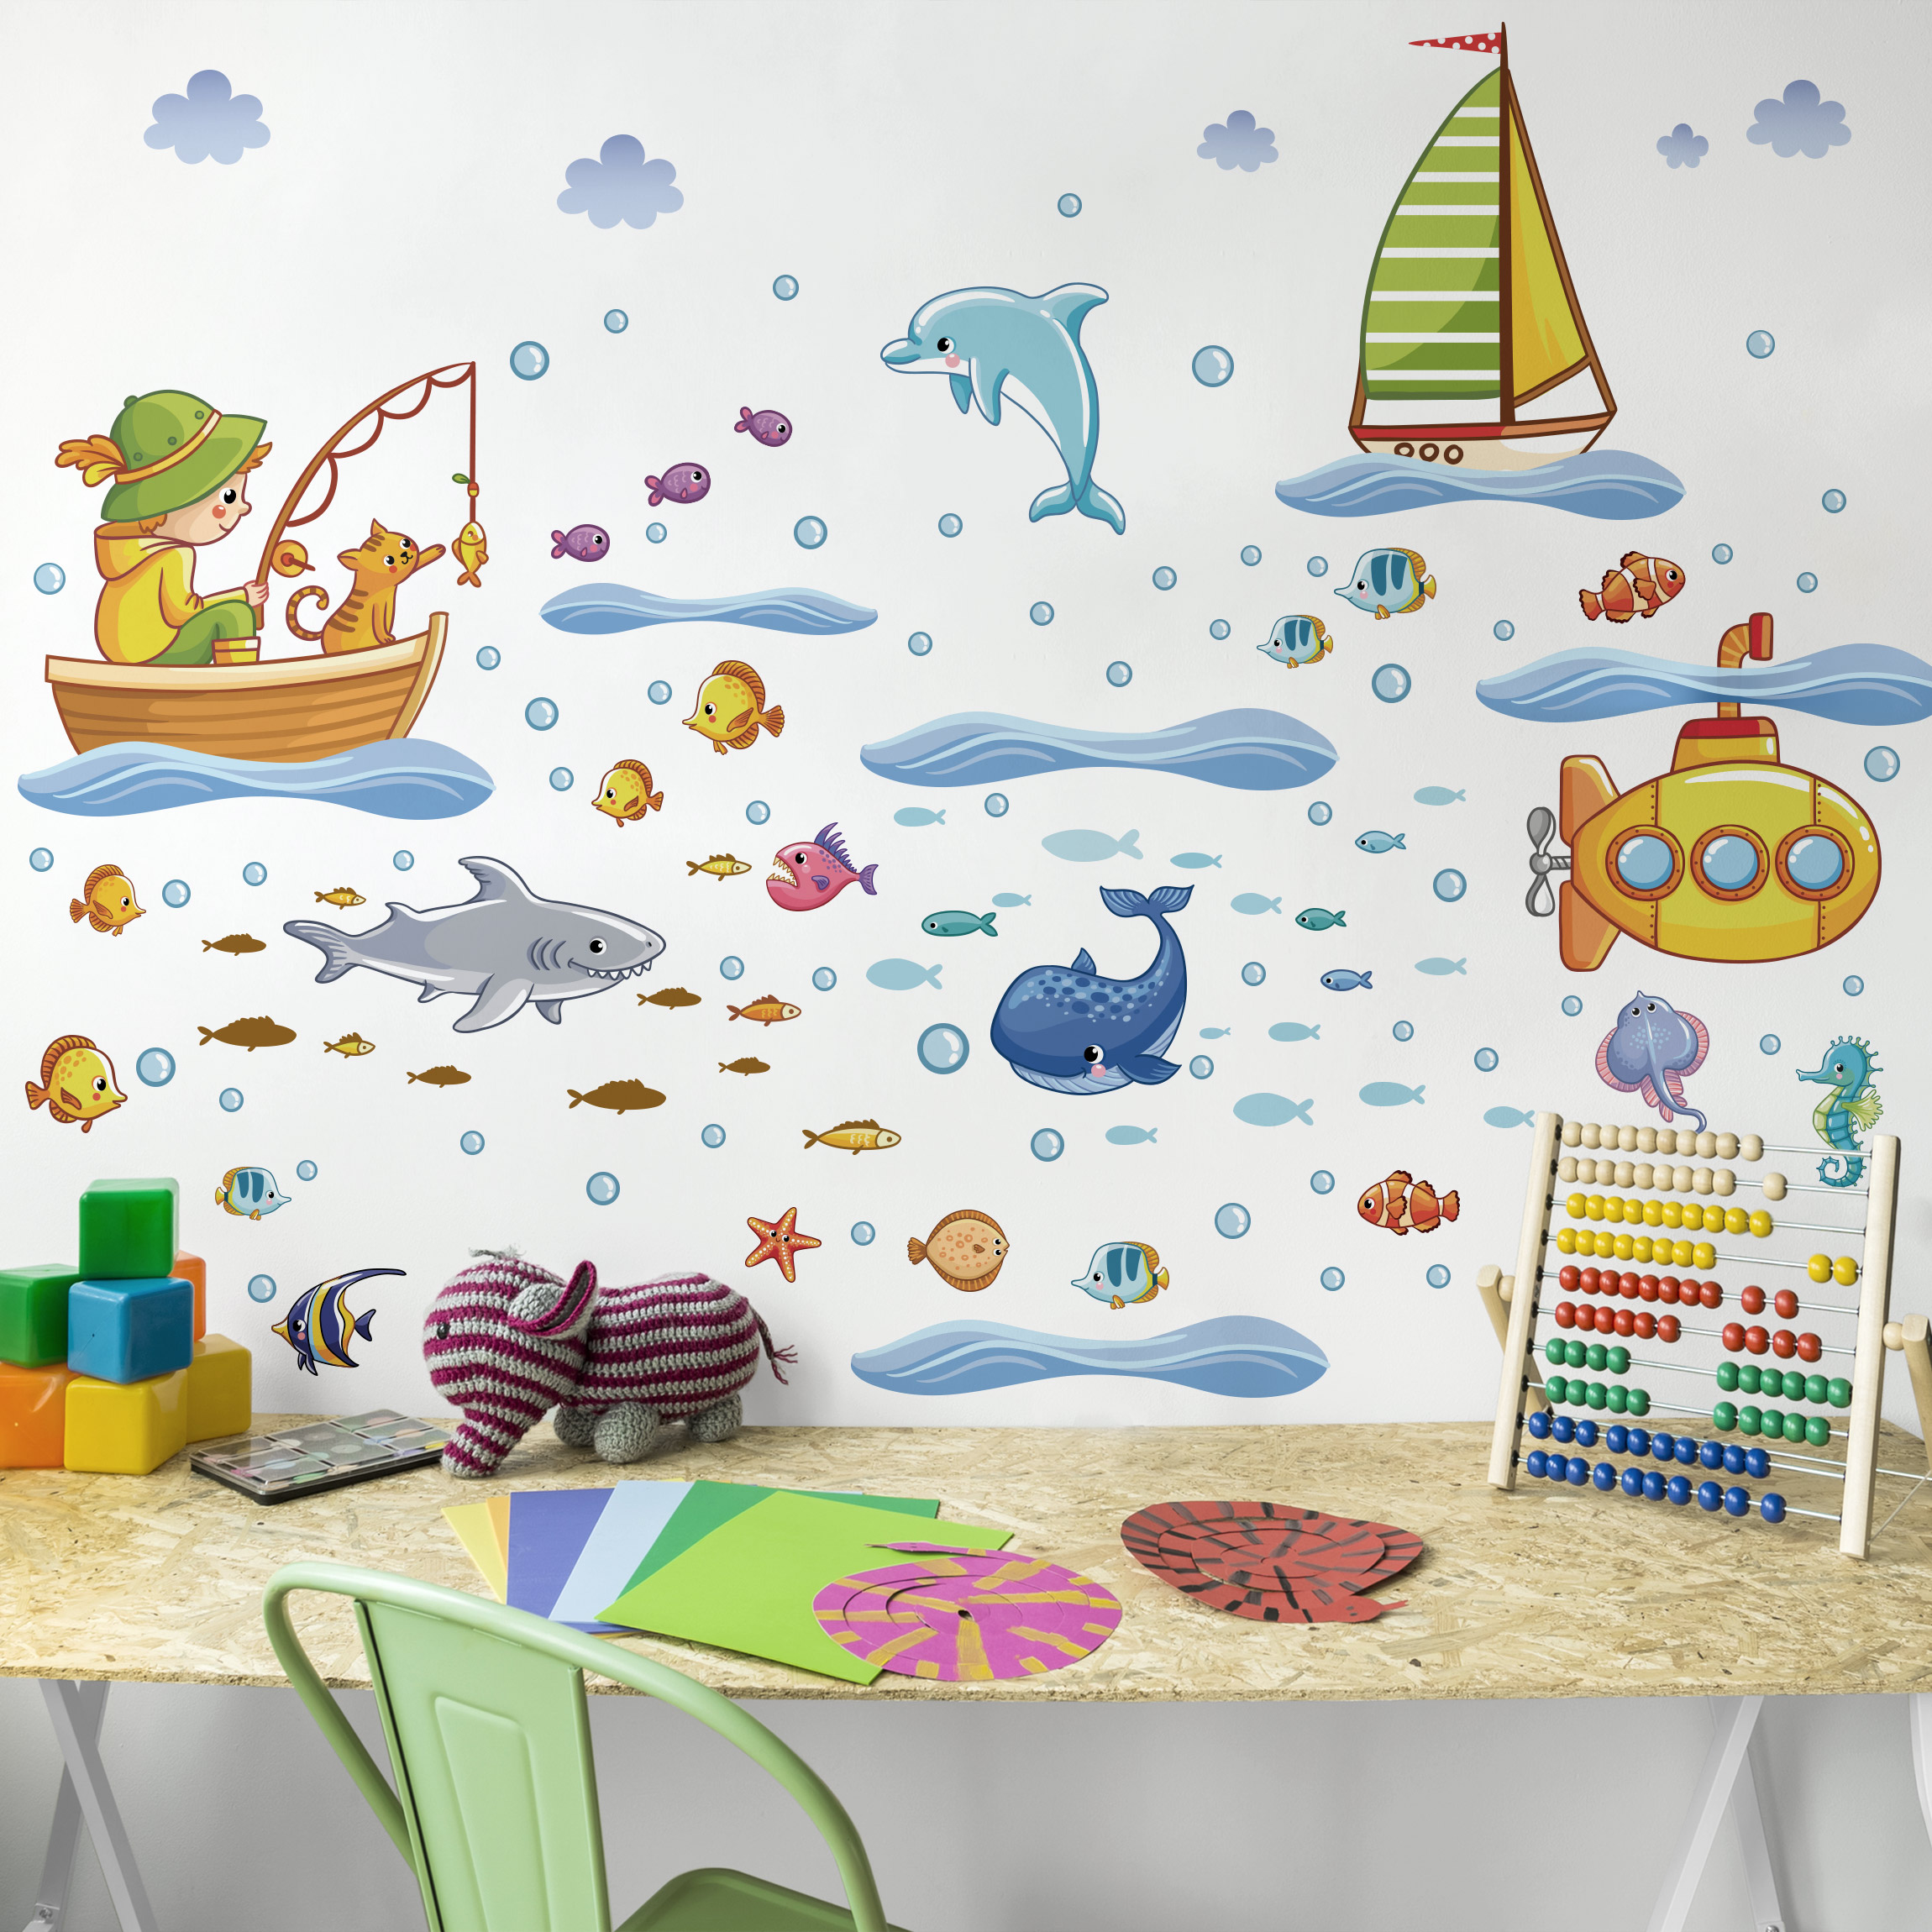 wandtattoo kinderzimmer unterwasserwelt u boot set. Black Bedroom Furniture Sets. Home Design Ideas